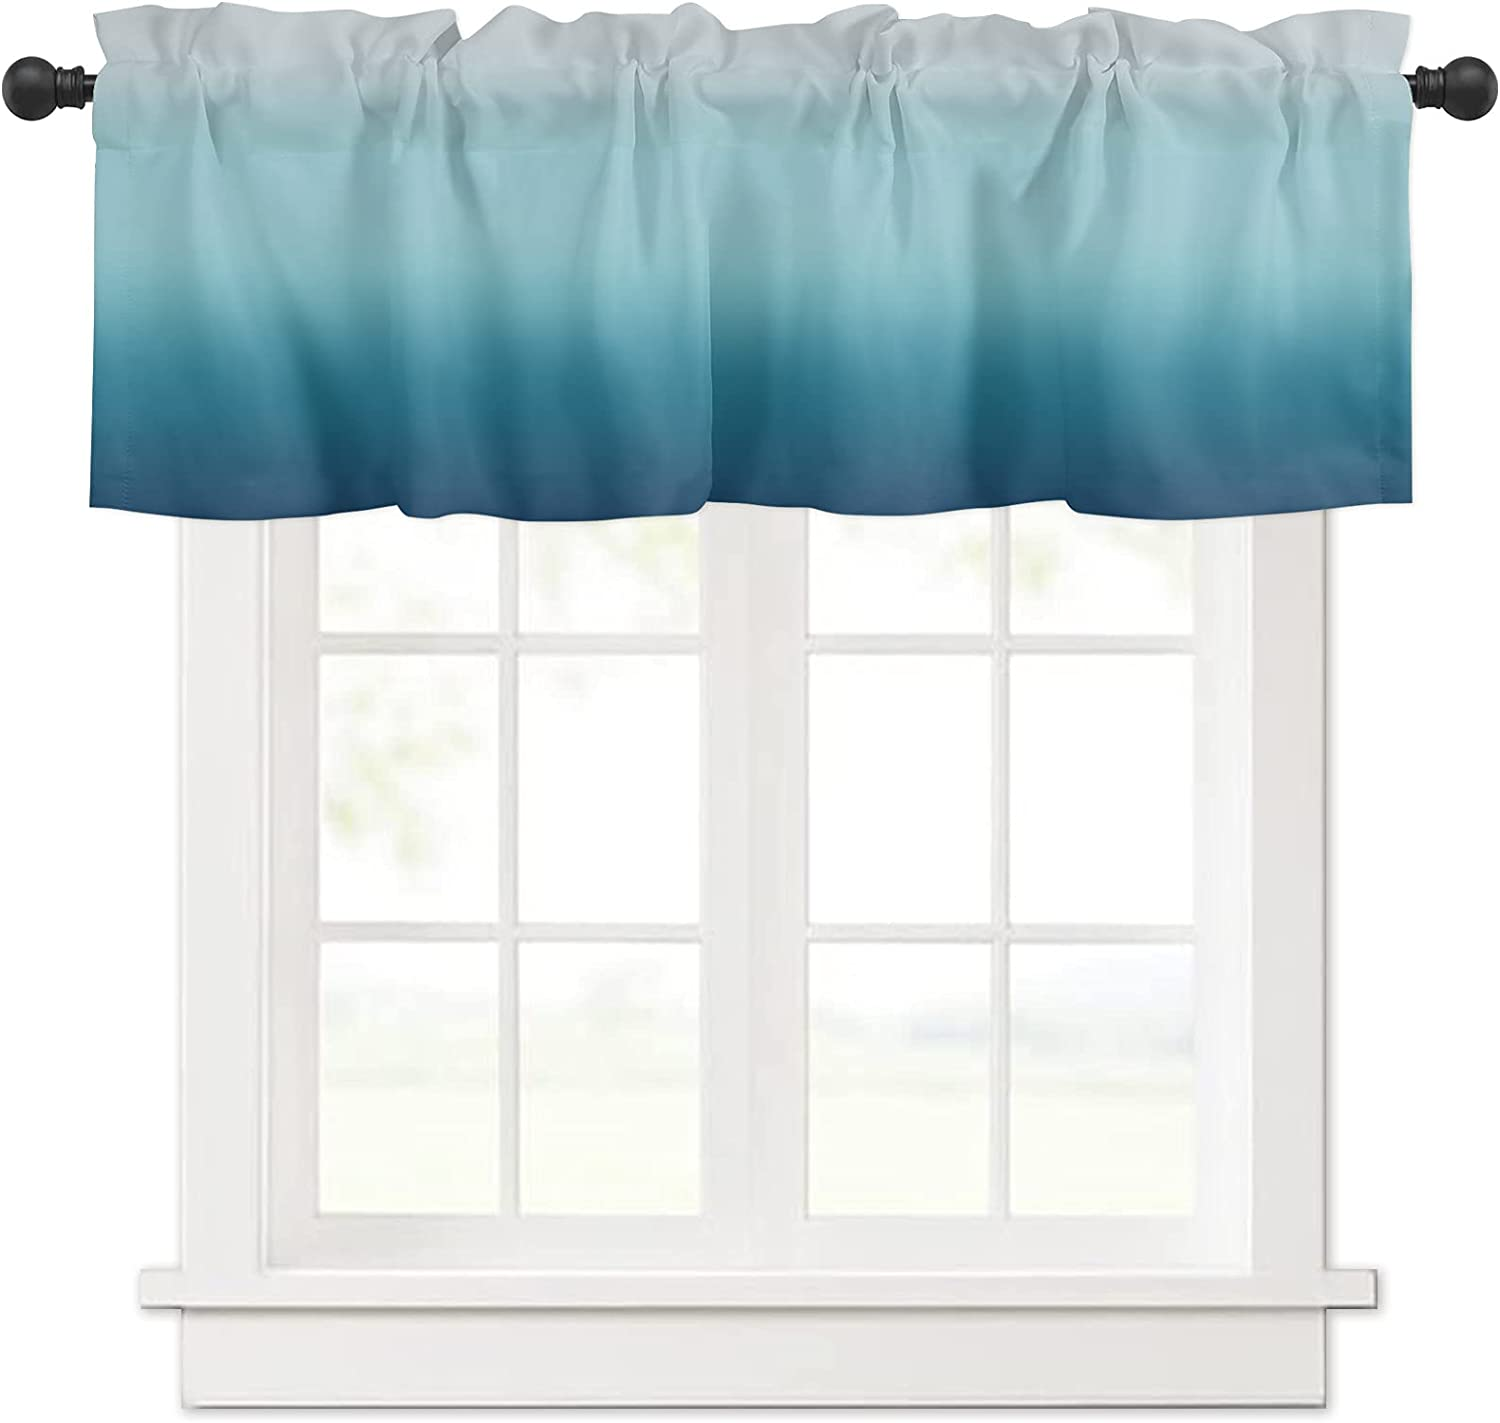 Ombre Blue and Green Gradient Curtain for Treat Valances Max 66% OFF Windows Sale special price